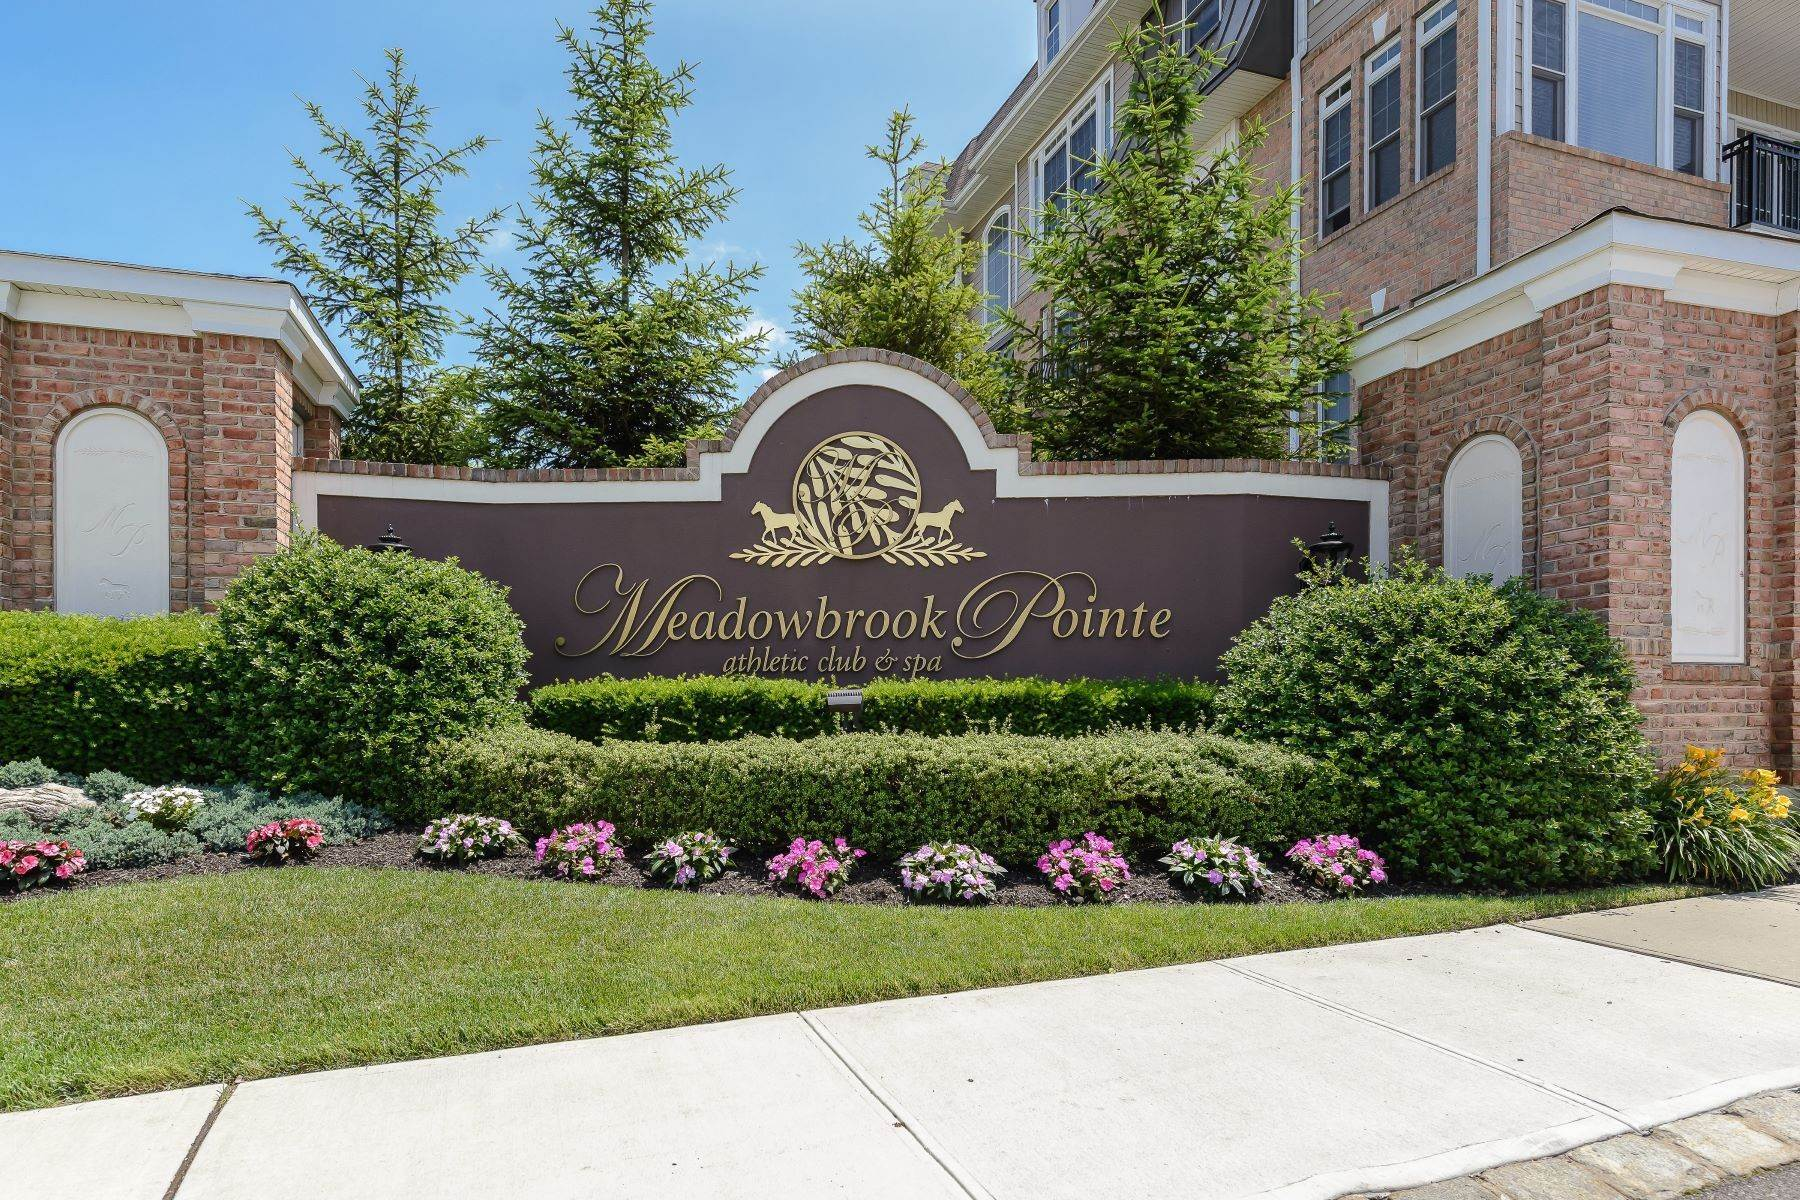 Condominiums for Sale at 88 Shady Lane, Westbury, Ny, 11590 88 Shady Lane Westbury, New York 11590 United States